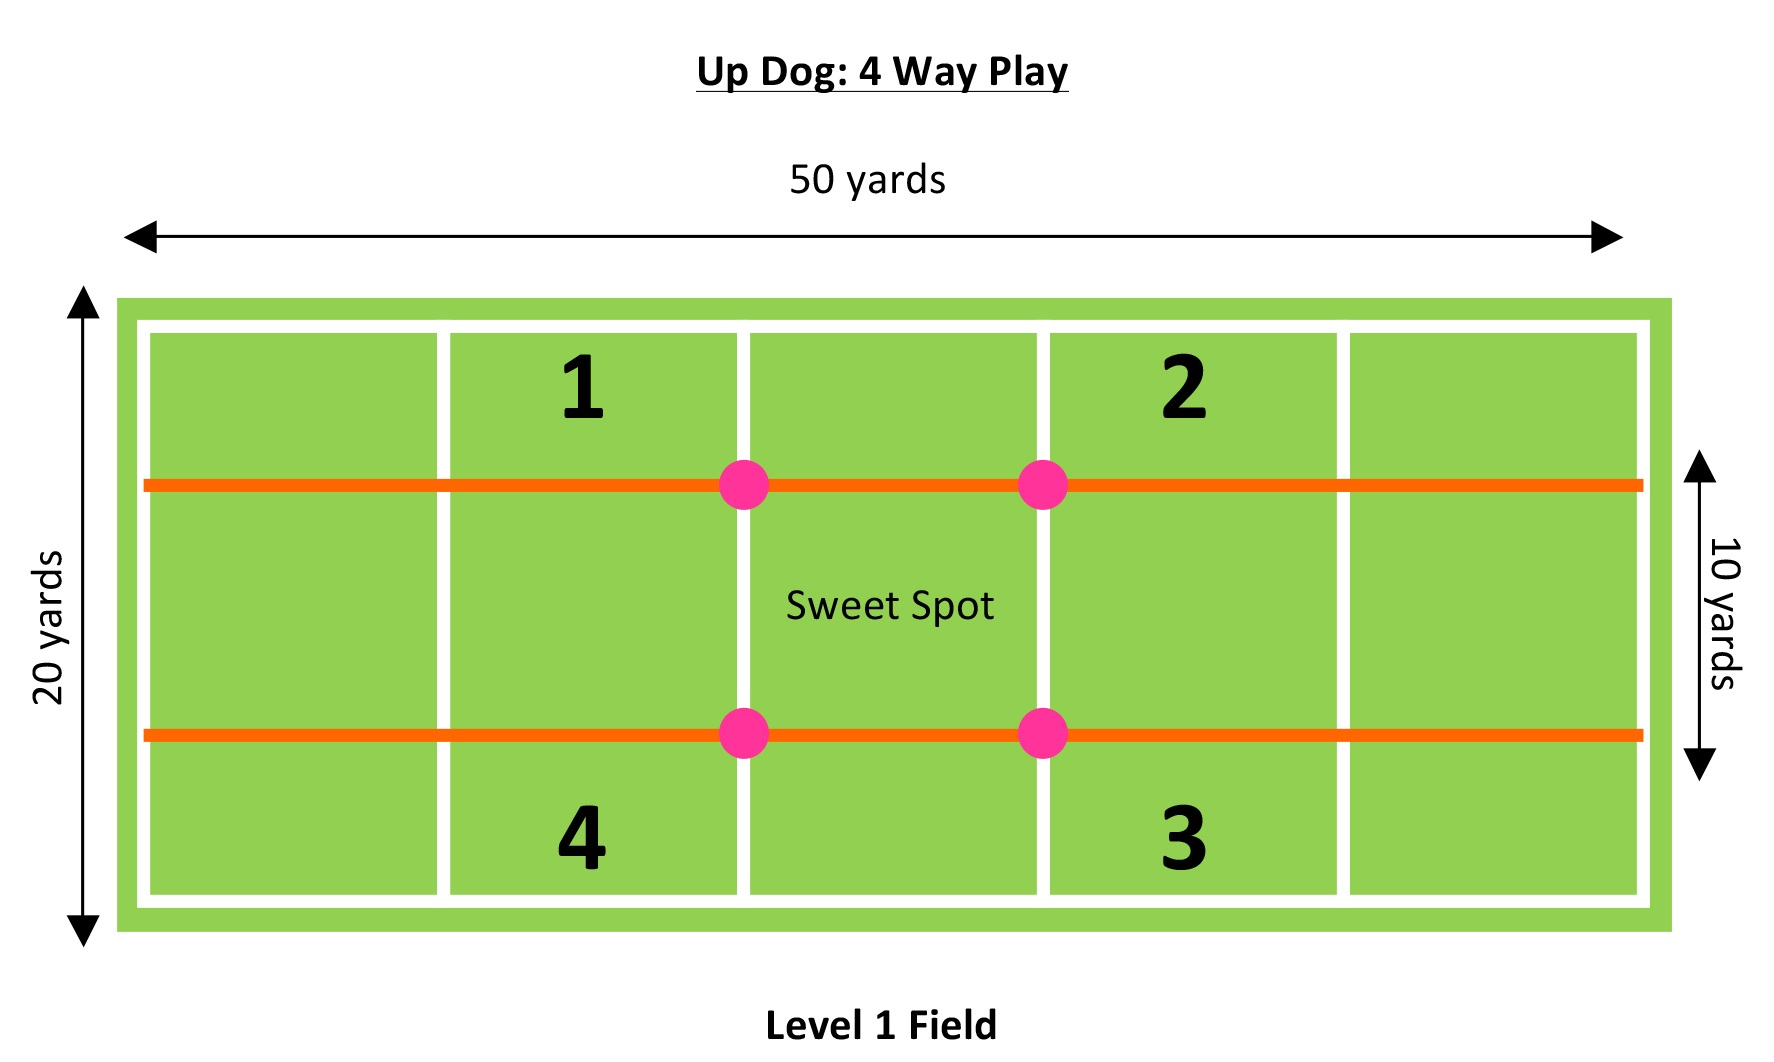 Up-Dog-4-Way-Play-Field-and-Rules-Level-1-V6-March-2018-1.jpg